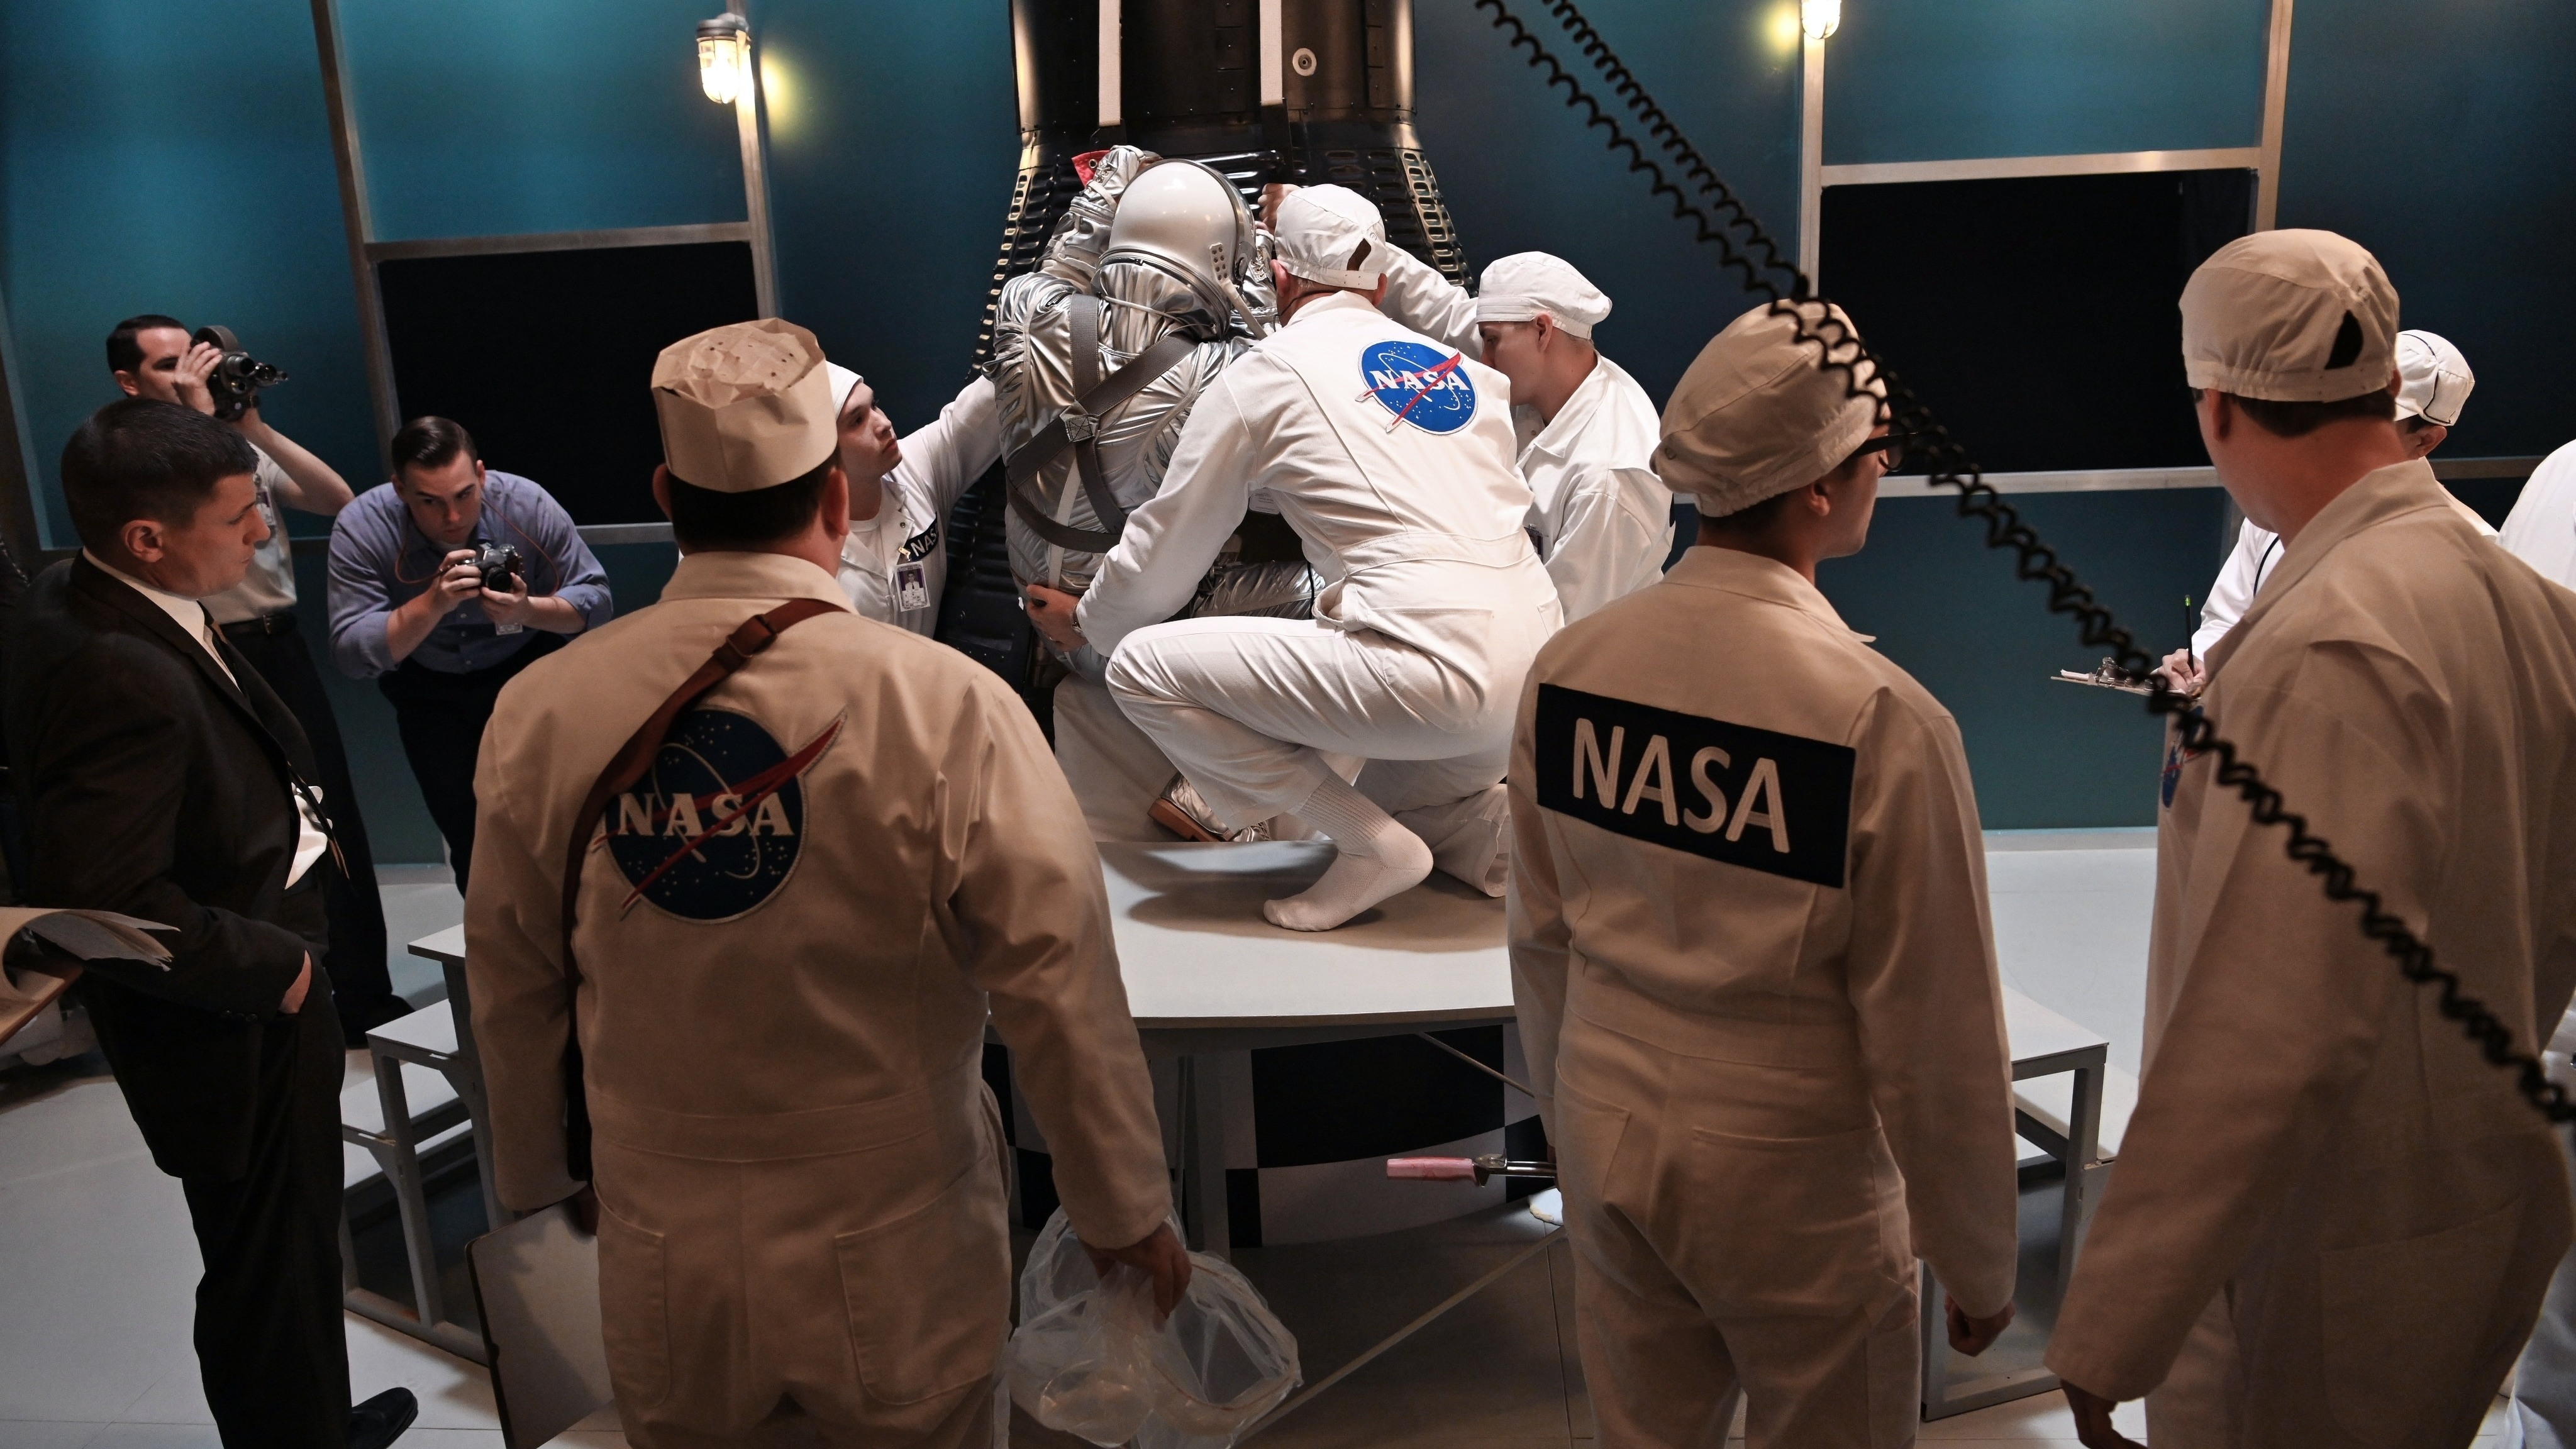 Alan Shepard (standing left)  played by Jake McDorman prepares to enter the Mercury capsule with the assistance of John Glenn (center) played by Patrick J. Adams in National Geographic's THE RIGHT STUFF streaming on Disney+. (Credit: National Geographic/Gene Page)